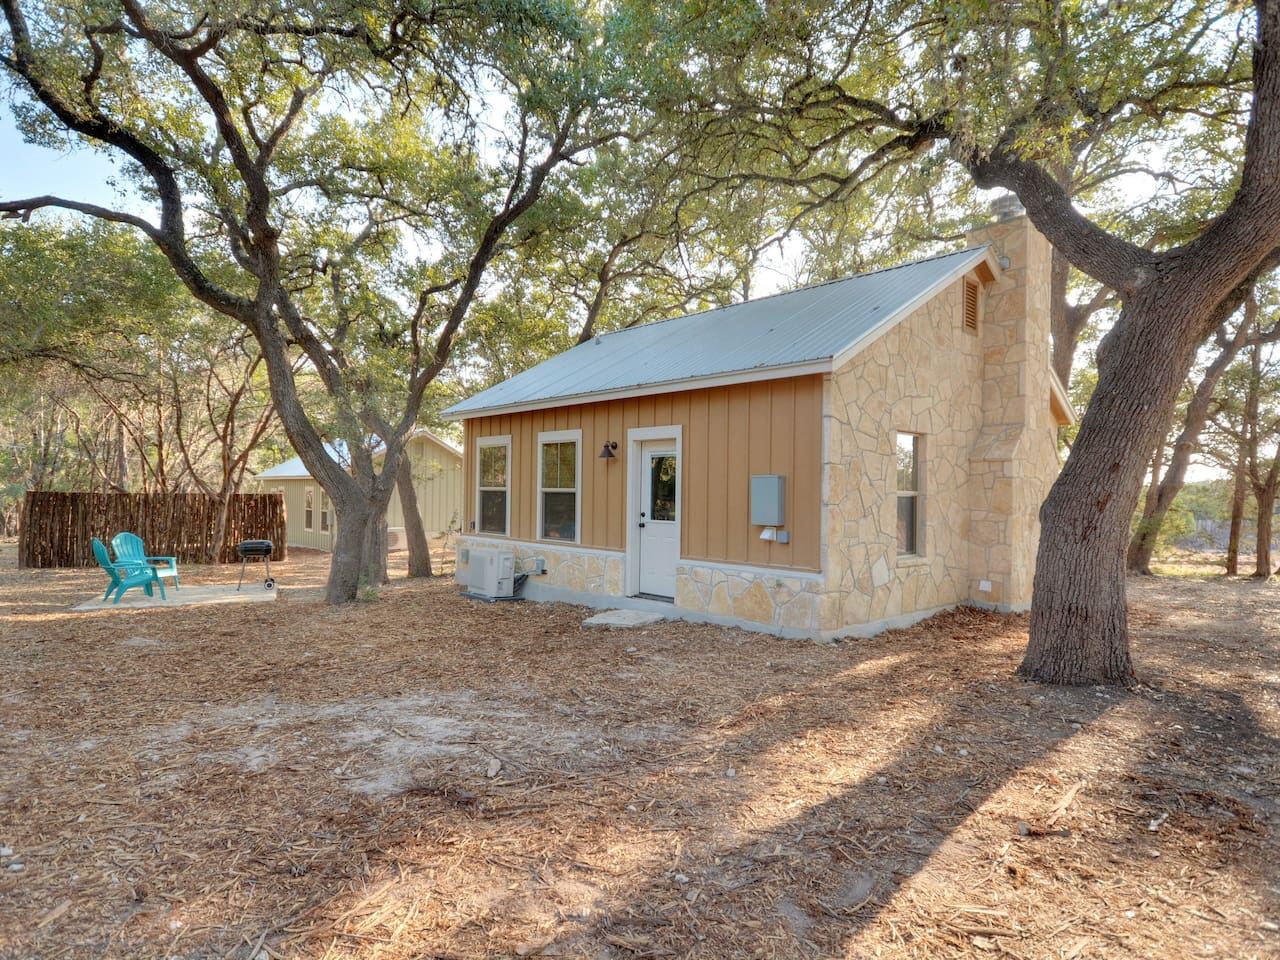 cottages remodel in home decorating to easylovely stunning creek with cypress nice wimberley about ideas inspiration